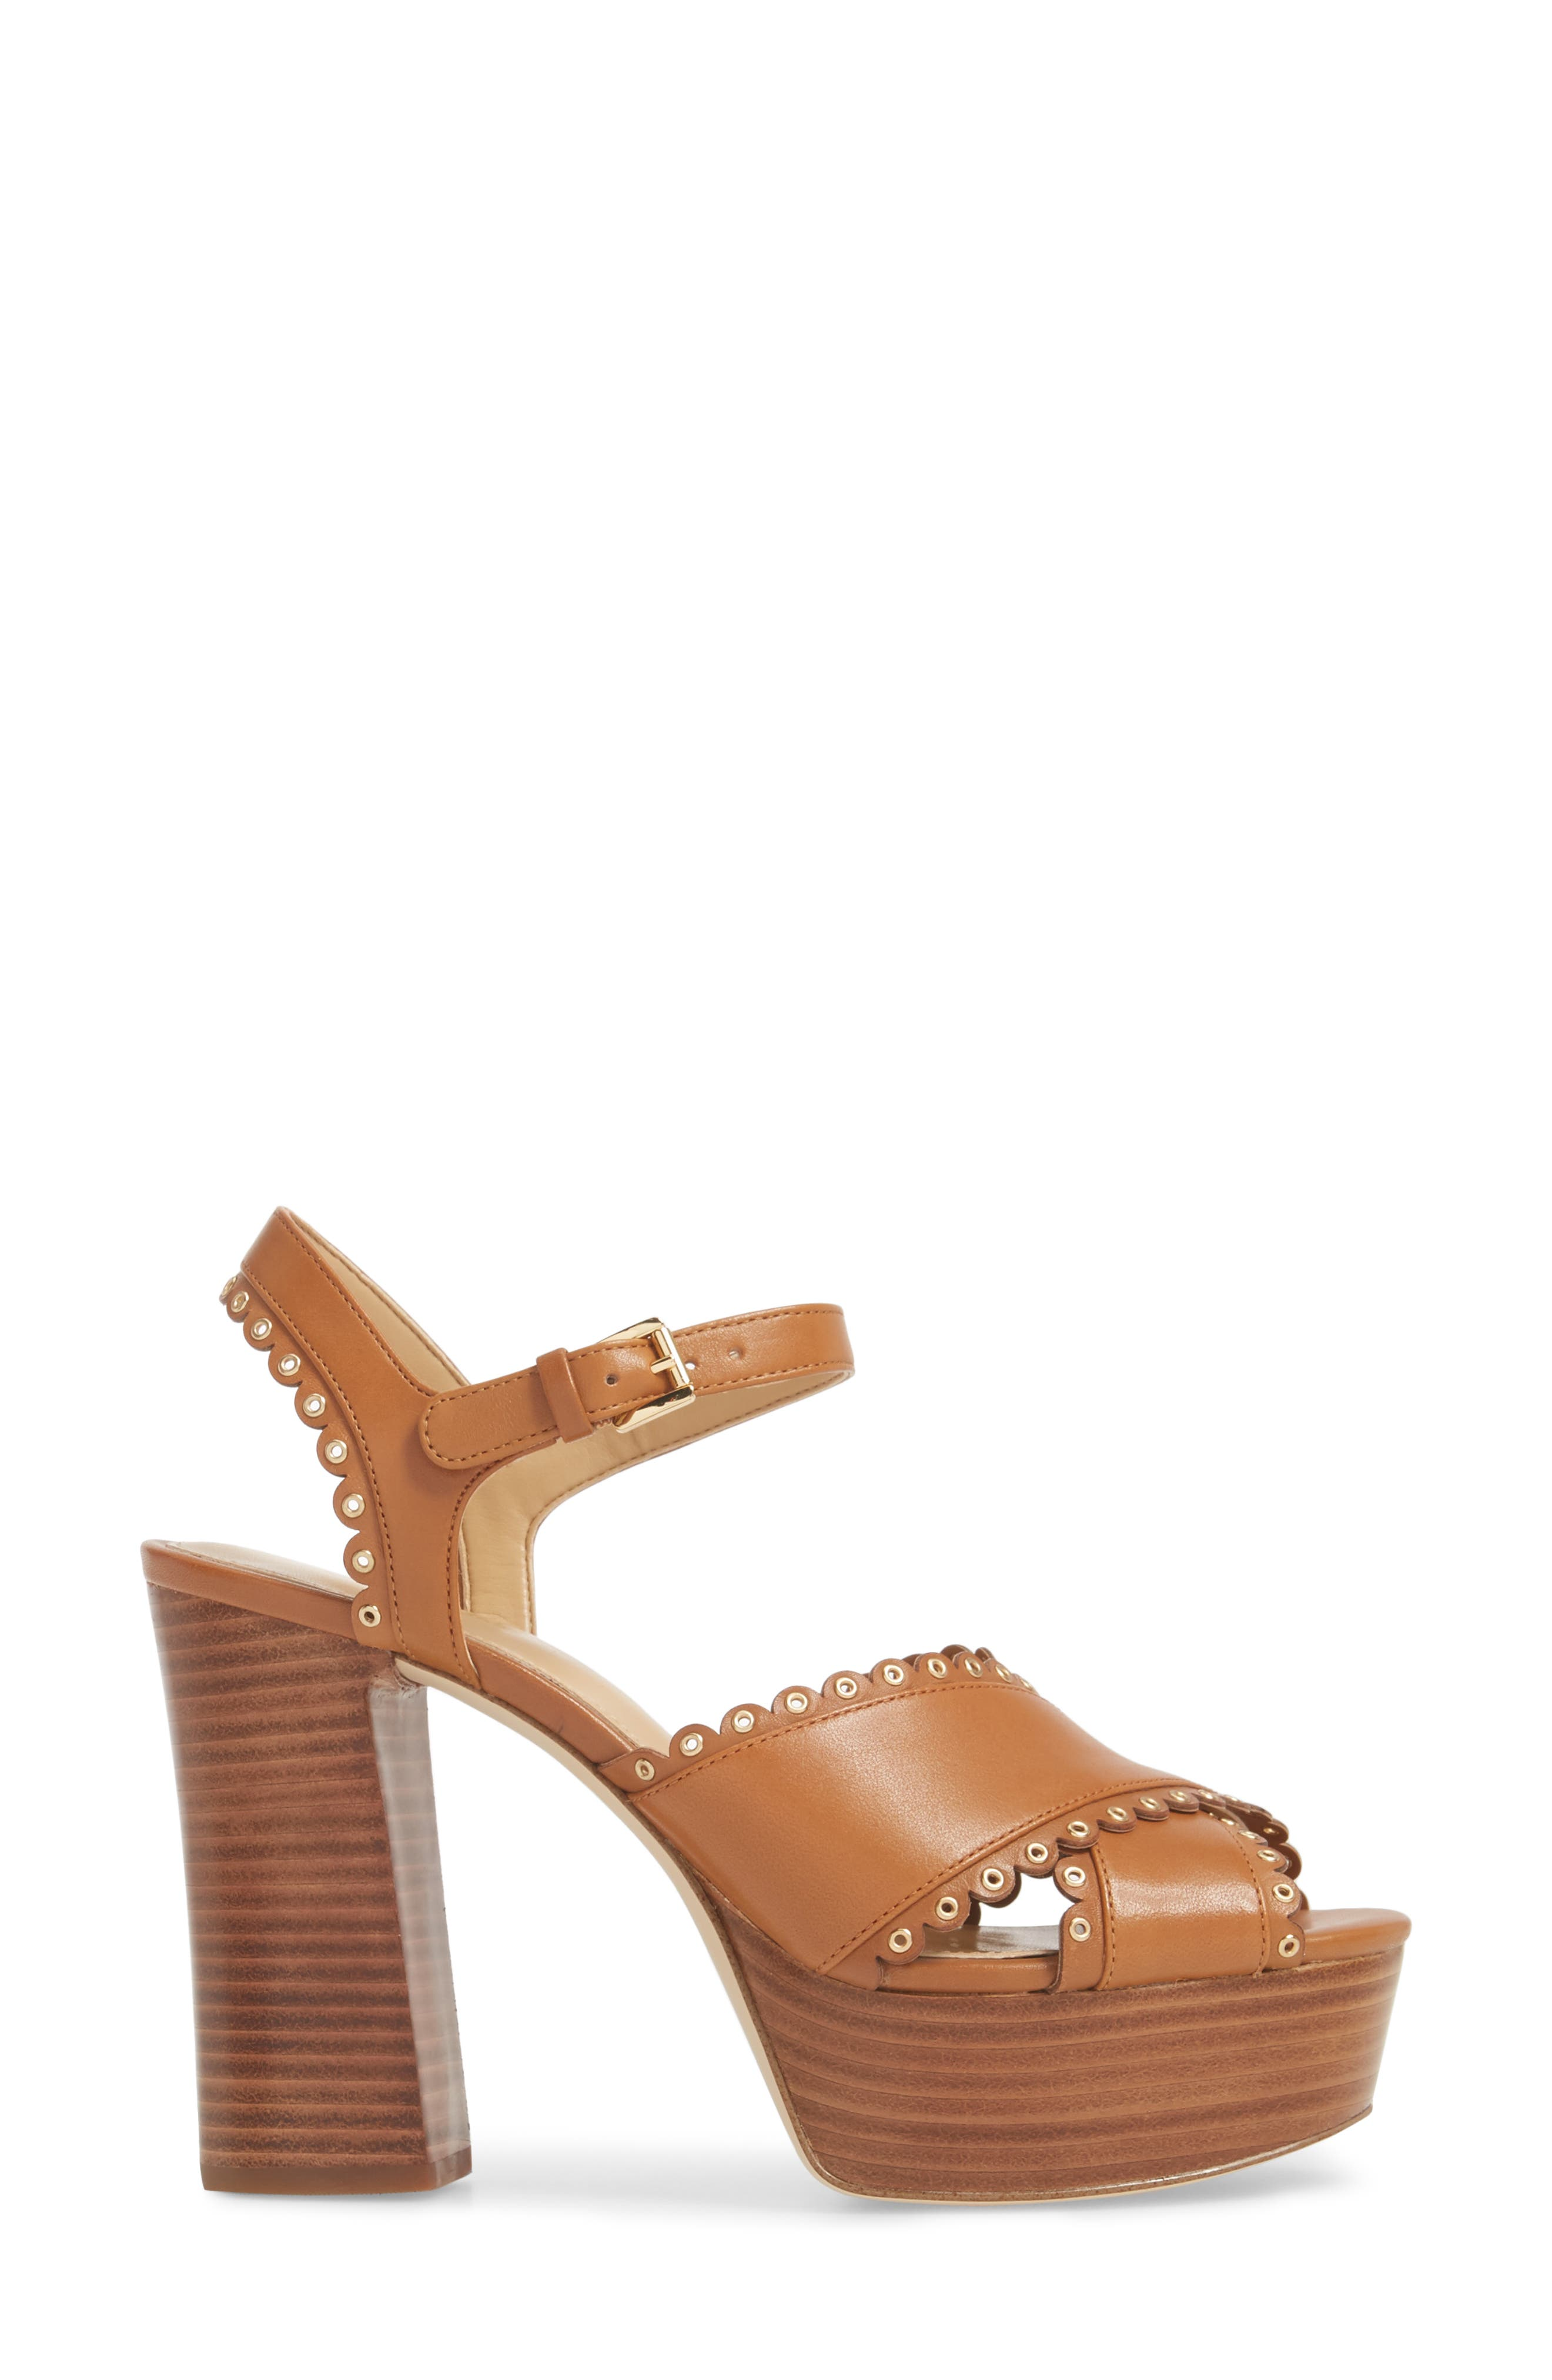 Jessie Platform Sandal,                             Alternate thumbnail 5, color,